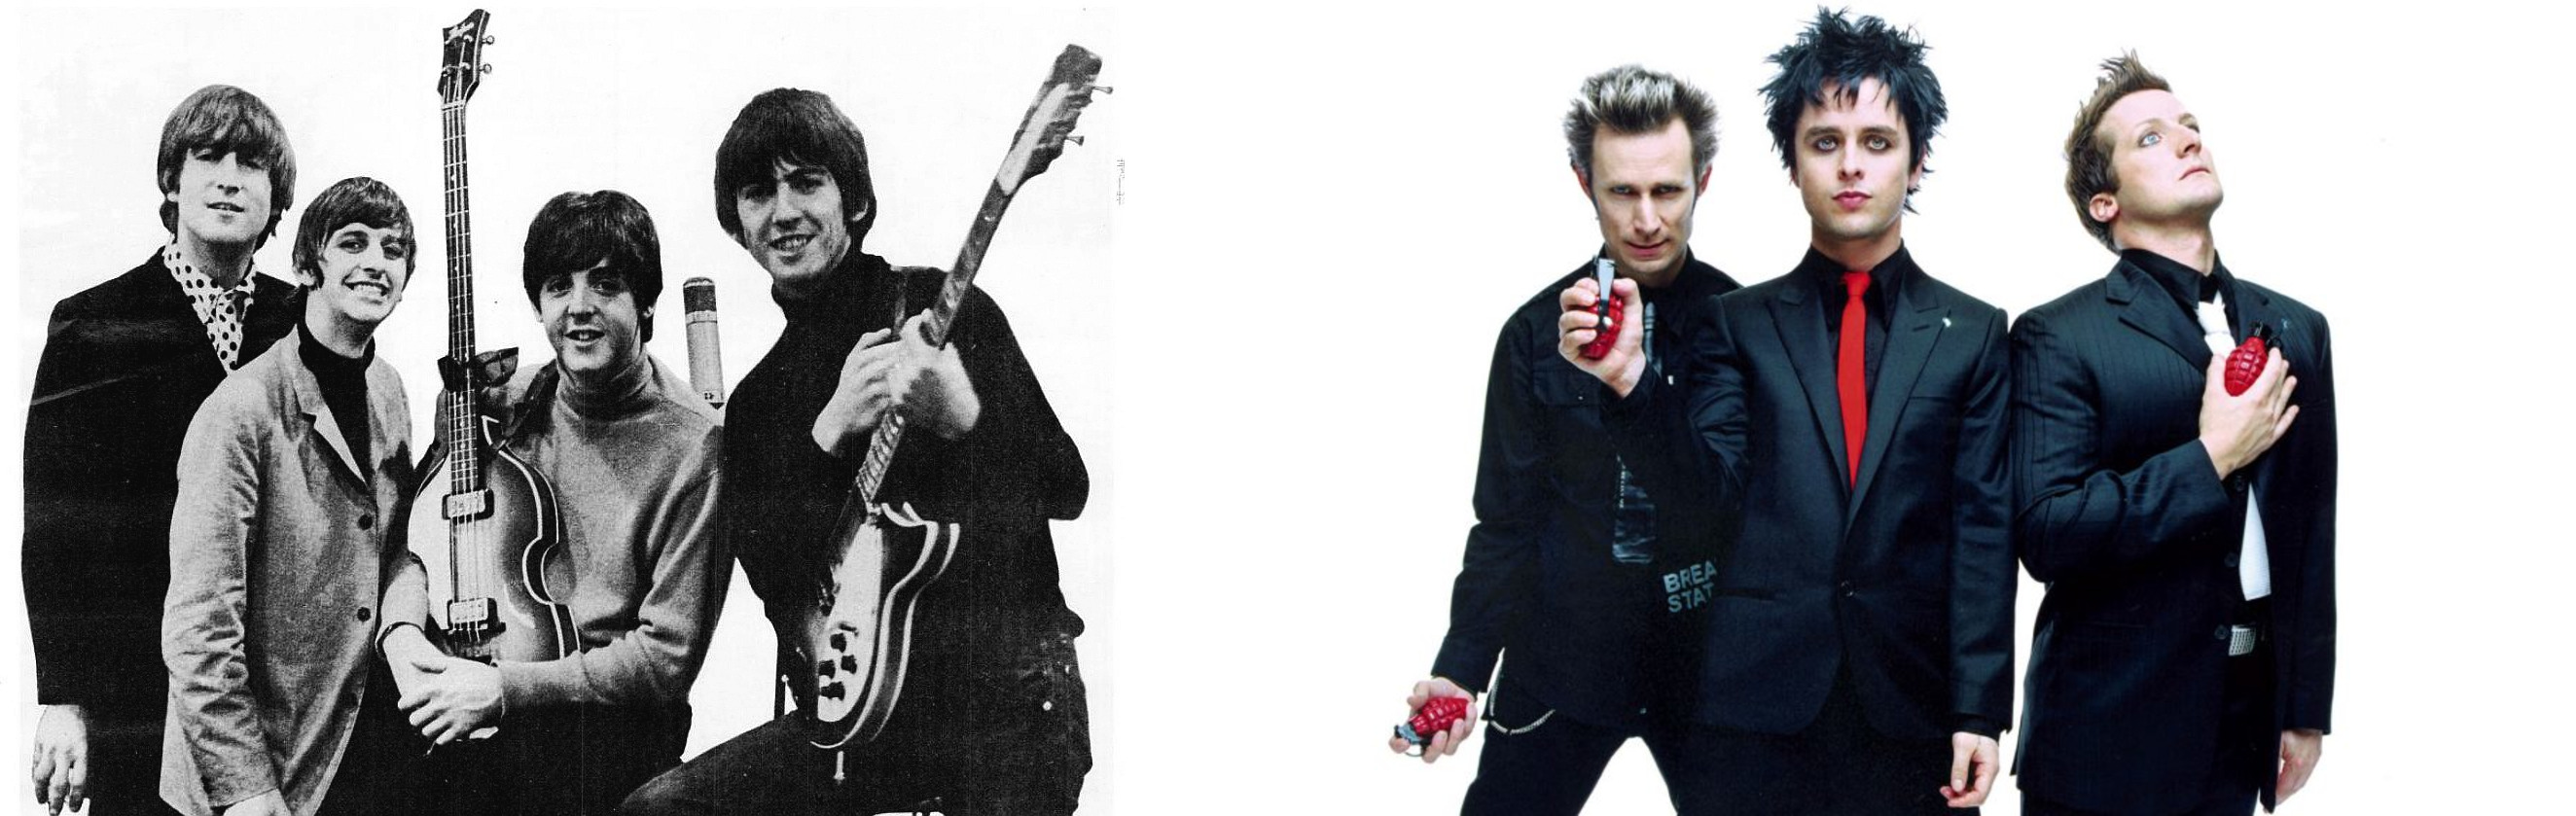 Classic Rock vs Modern Rock - What's the Difference?